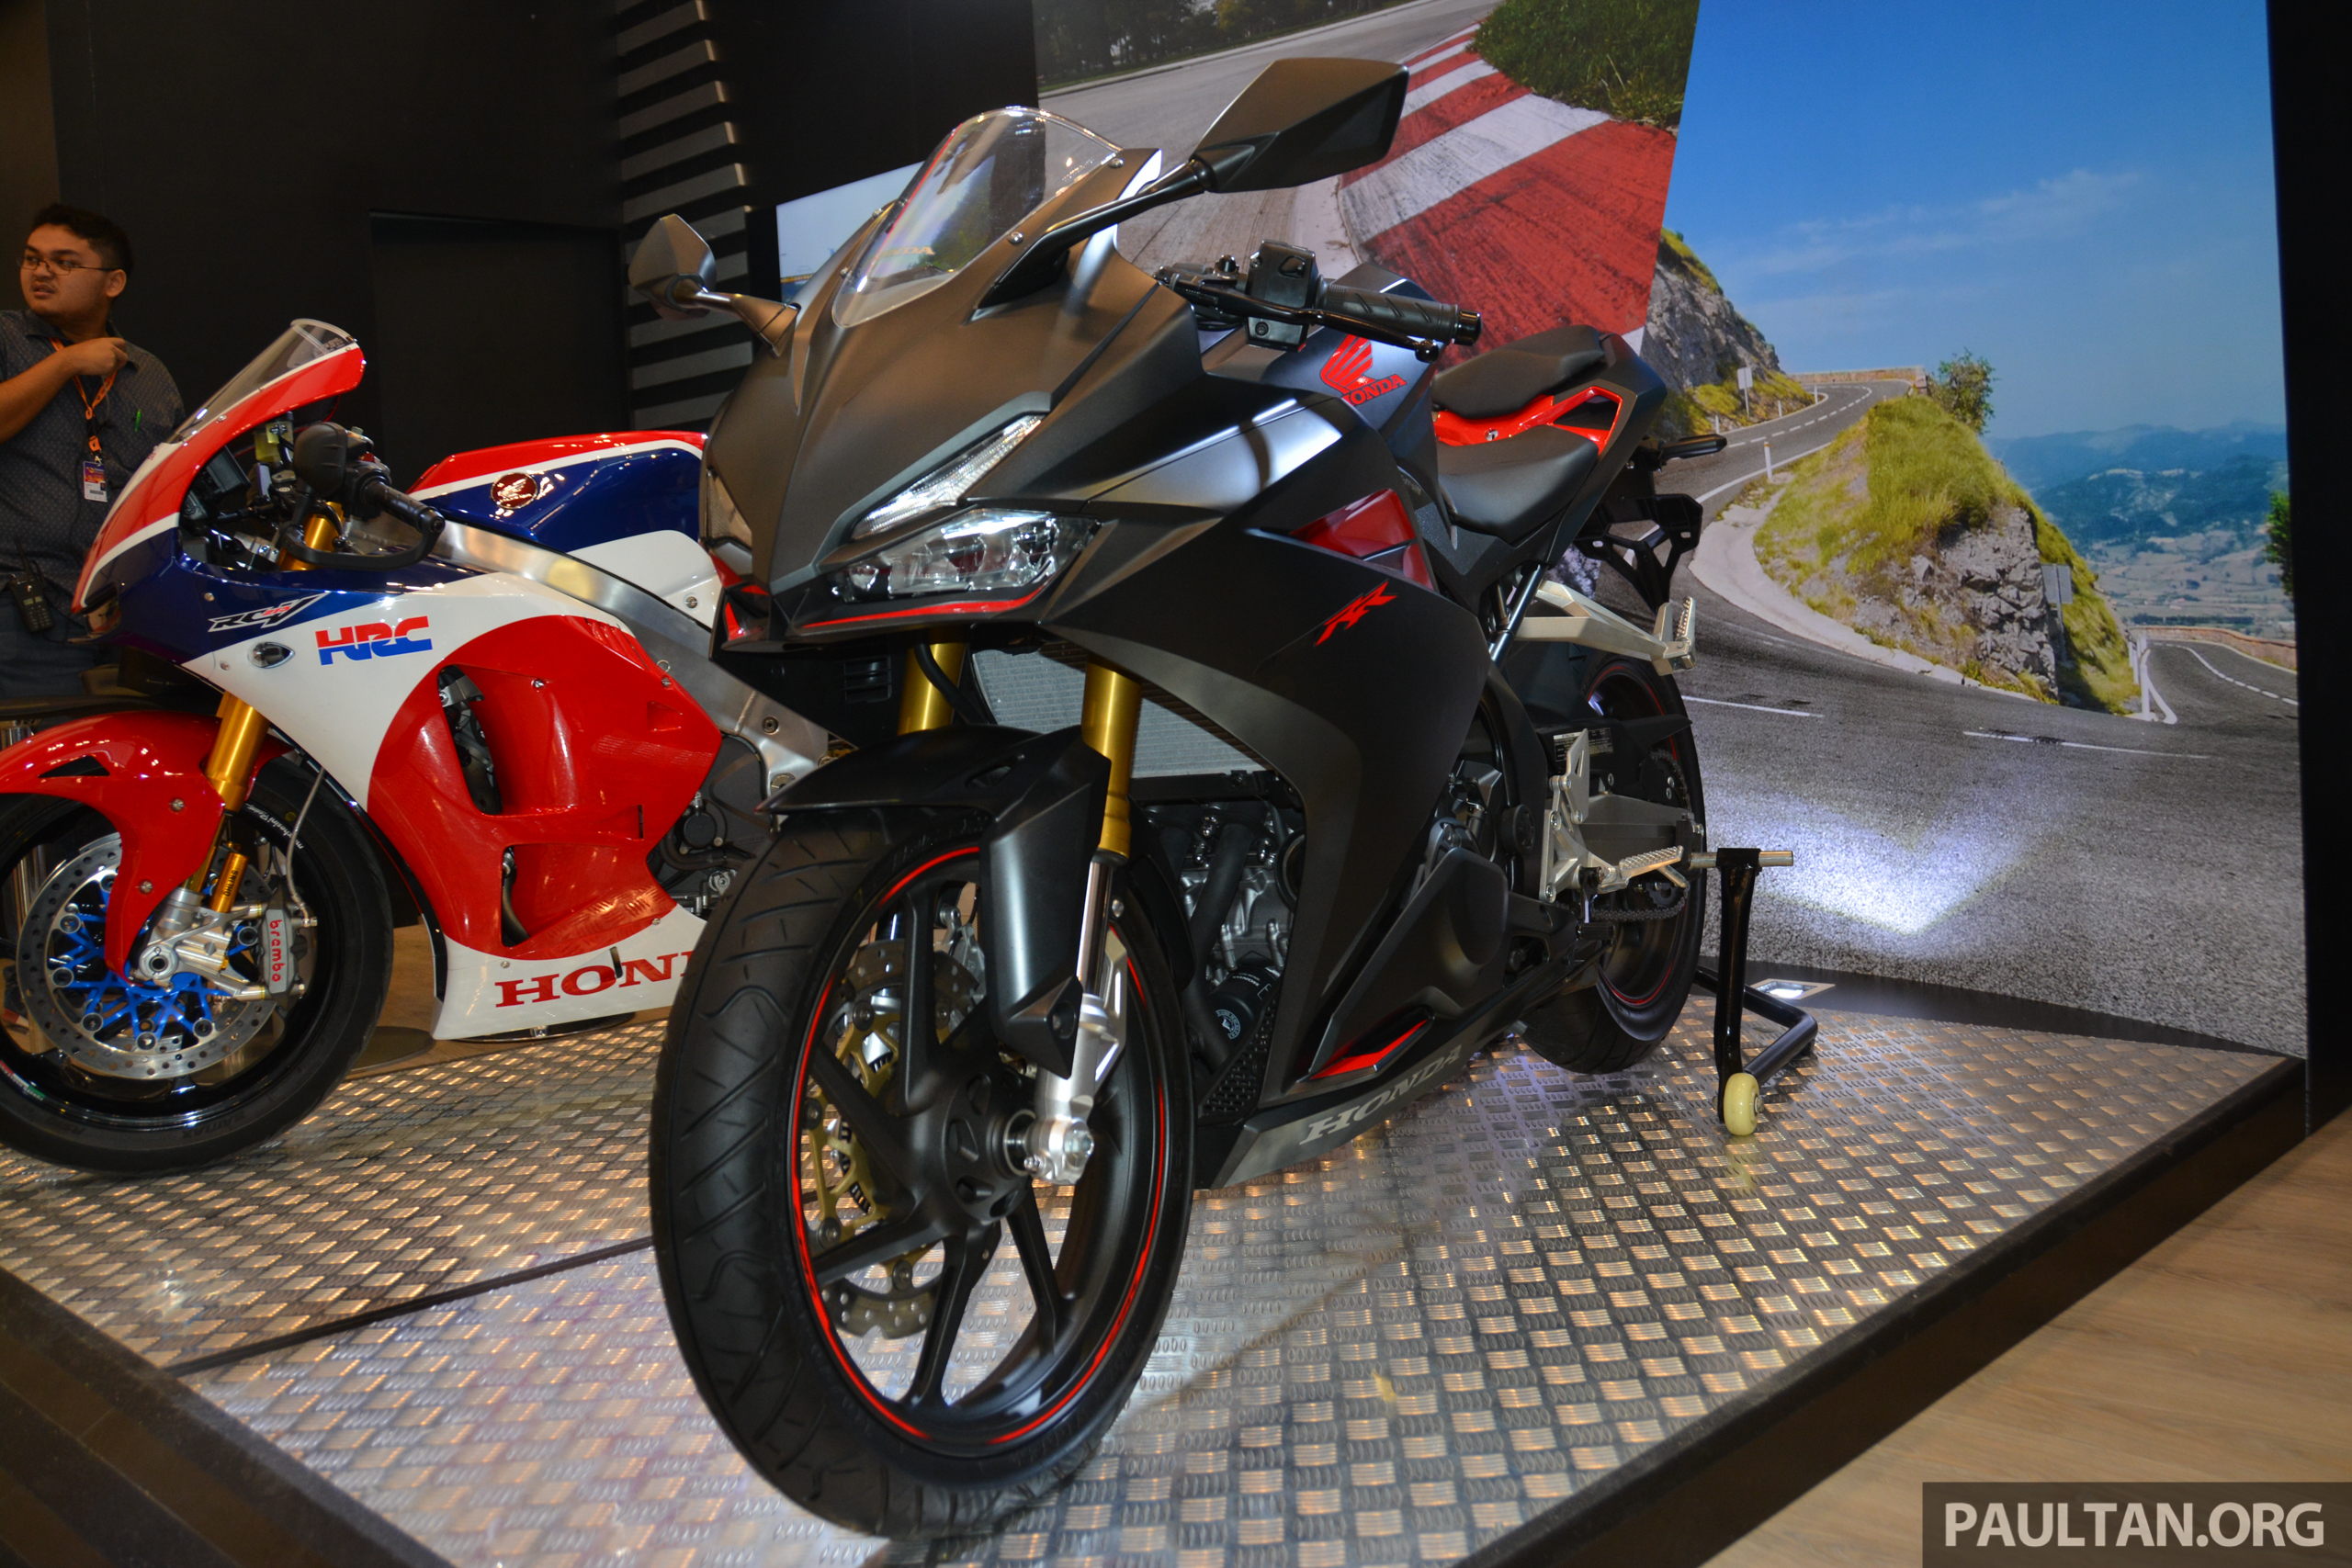 GIIAS 2016: Honda CBR250RR - the new 250 cc sports